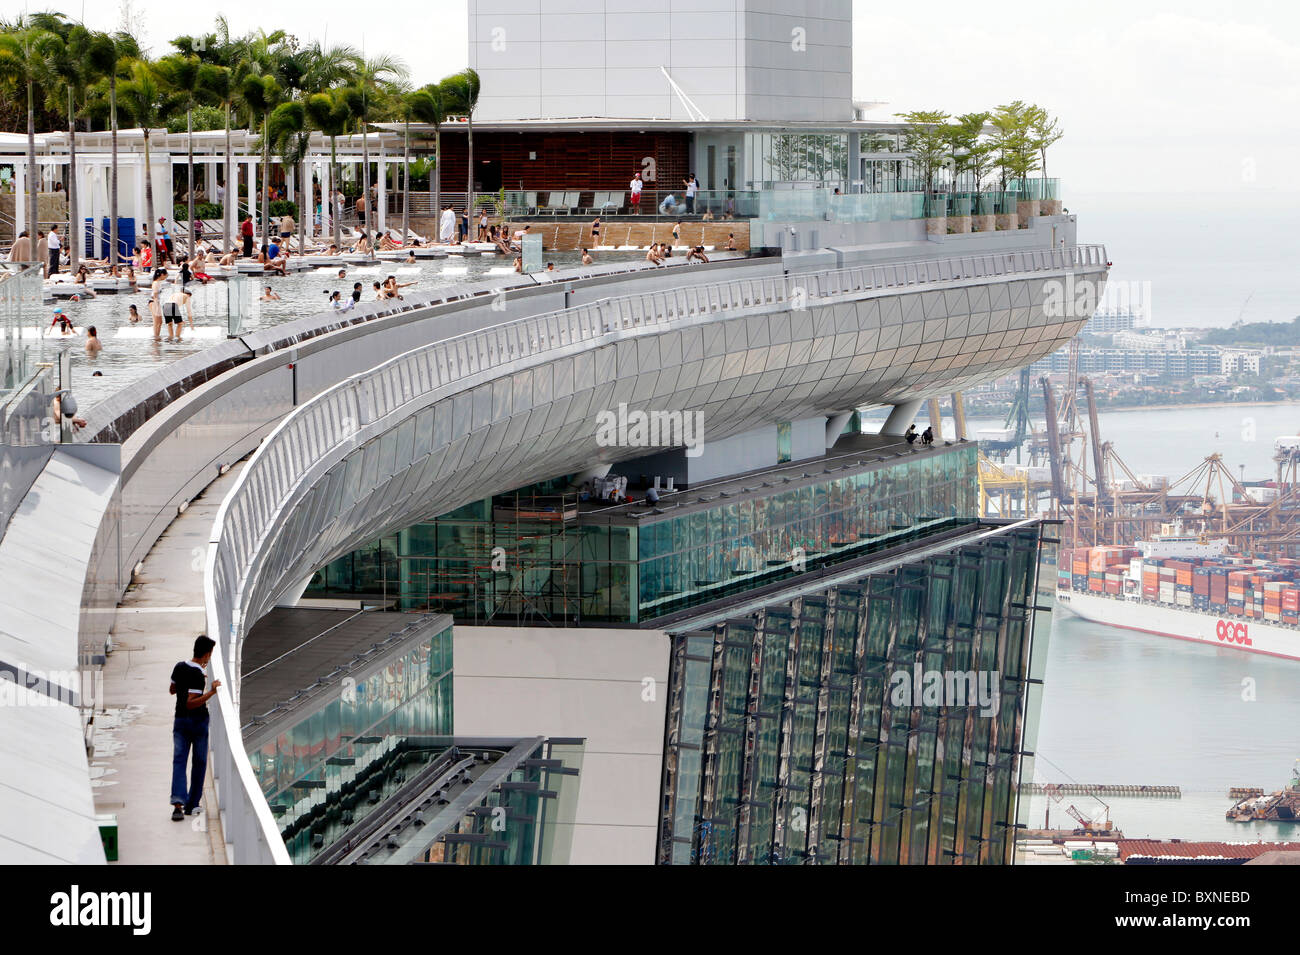 The marina bay sands resort hotel in singapore swimming pool on top stock photo 33663713 alamy - Marina bay sands resort singapore swimming pool ...